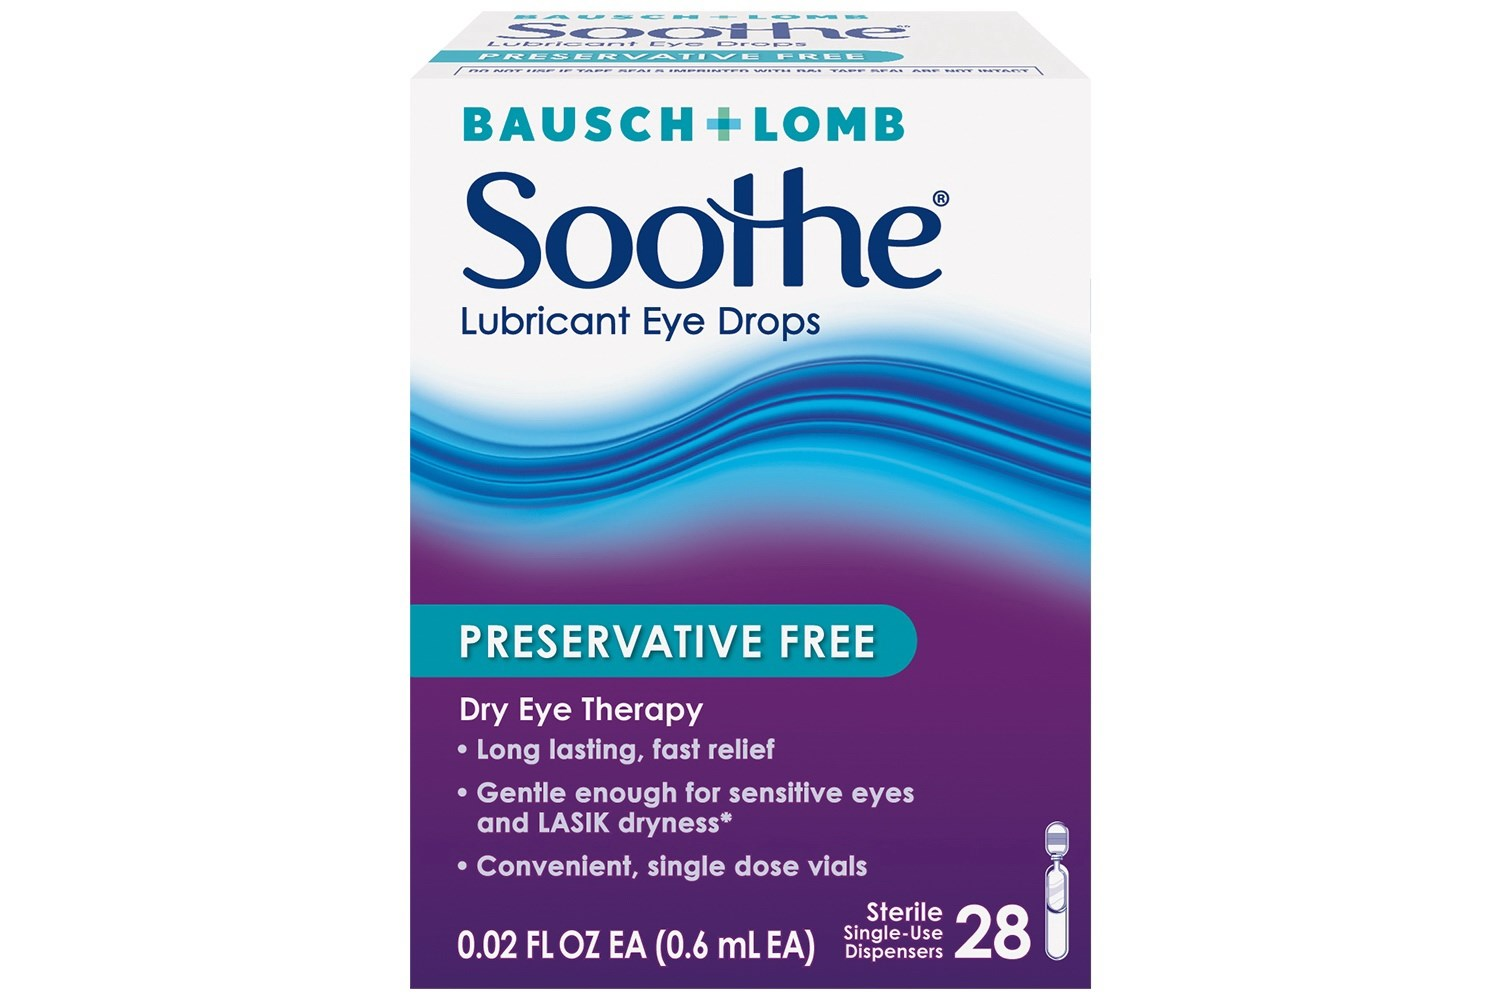 Bausch & Lomb Soothe Lubricant Eye Drops (28 ct.)